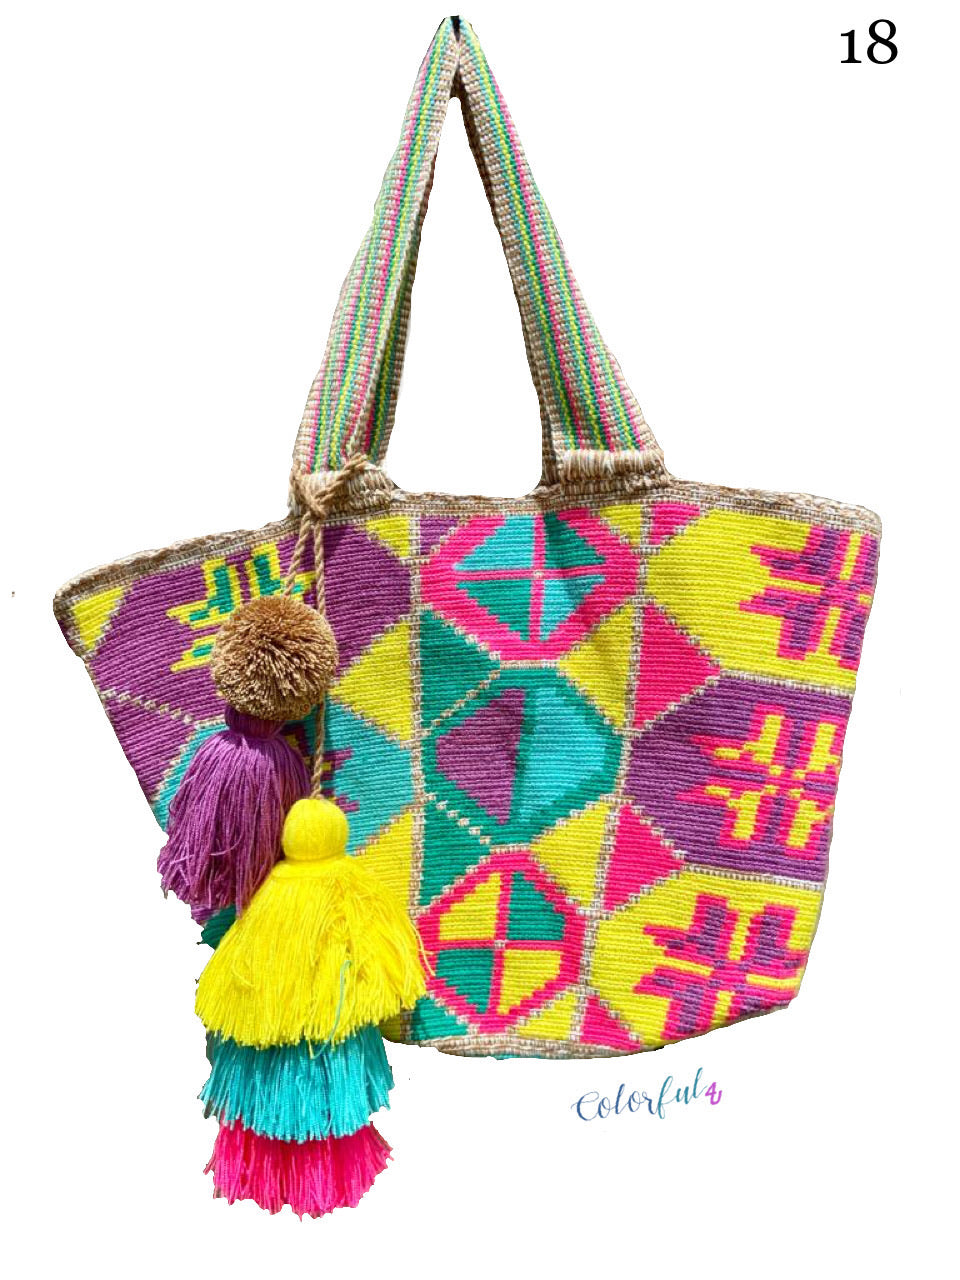 Yellow Tote Bag | Beach Bags | Beach Totes | Summer Bags